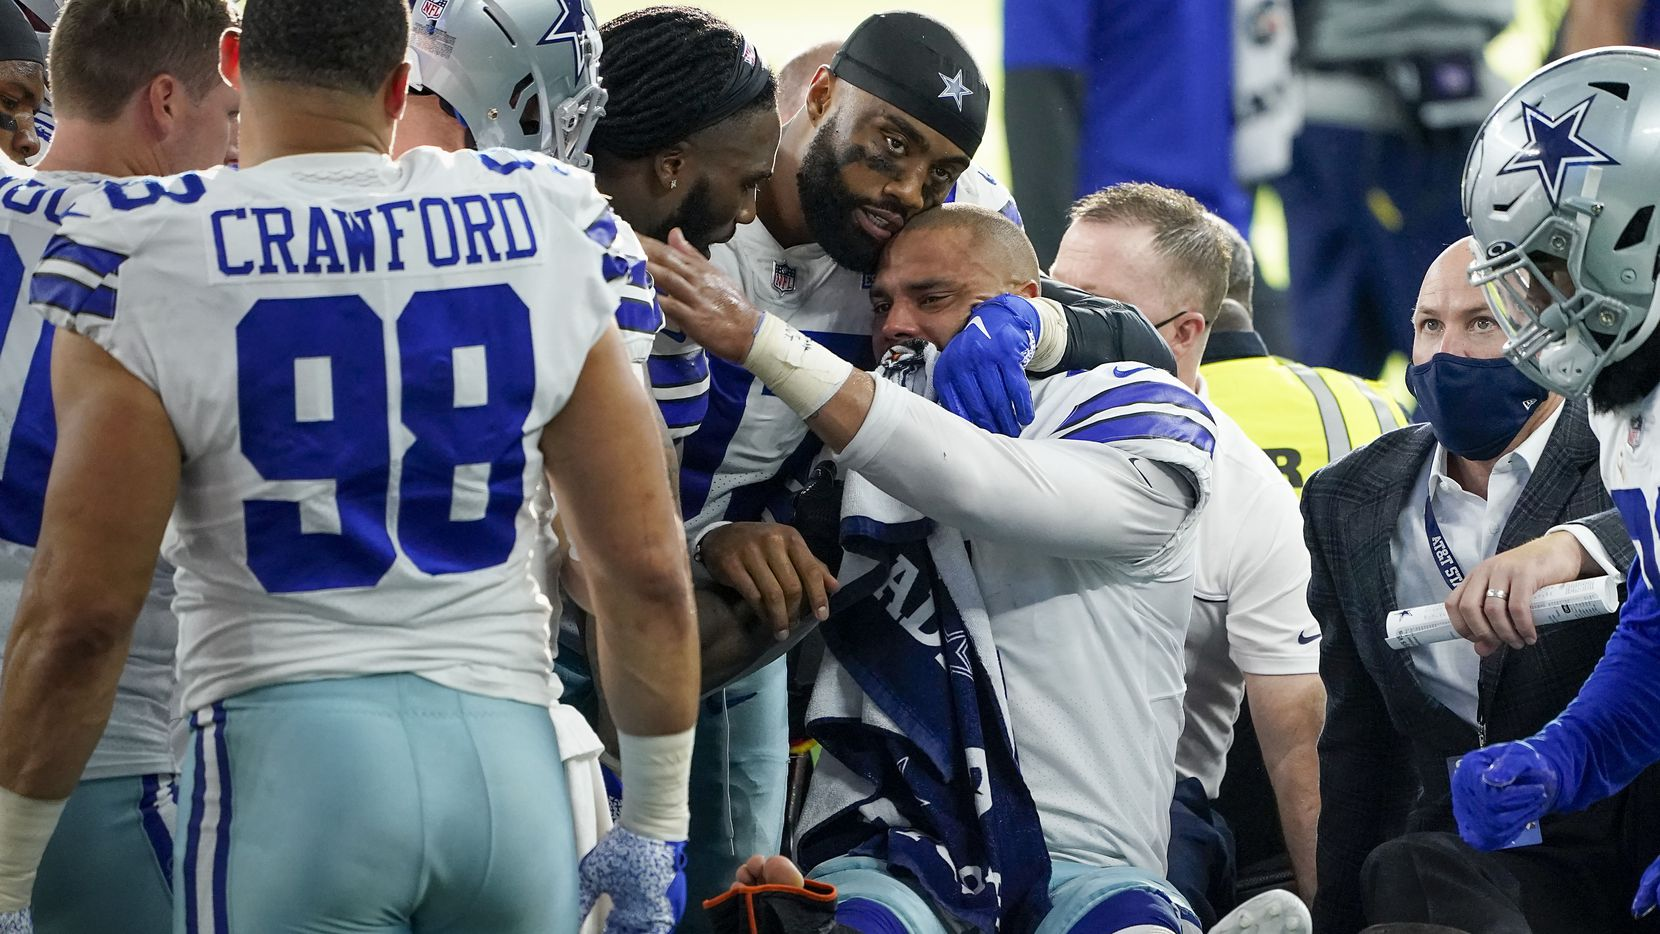 Dallas Cowboys quarterback Dak Prescott lis consoled by teammates as he leaves the field on a cart after beig injured on a tackle by New York Giants cornerback Logan Ryan during the third quarter of an NFL football game at AT&T Stadium on Sunday, Oct. 11, 2020, in Arlington. Prescott was injured o the play when Ryan came down on his right leg and left the game. (Smiley N. Pool/The Dallas Morning News)